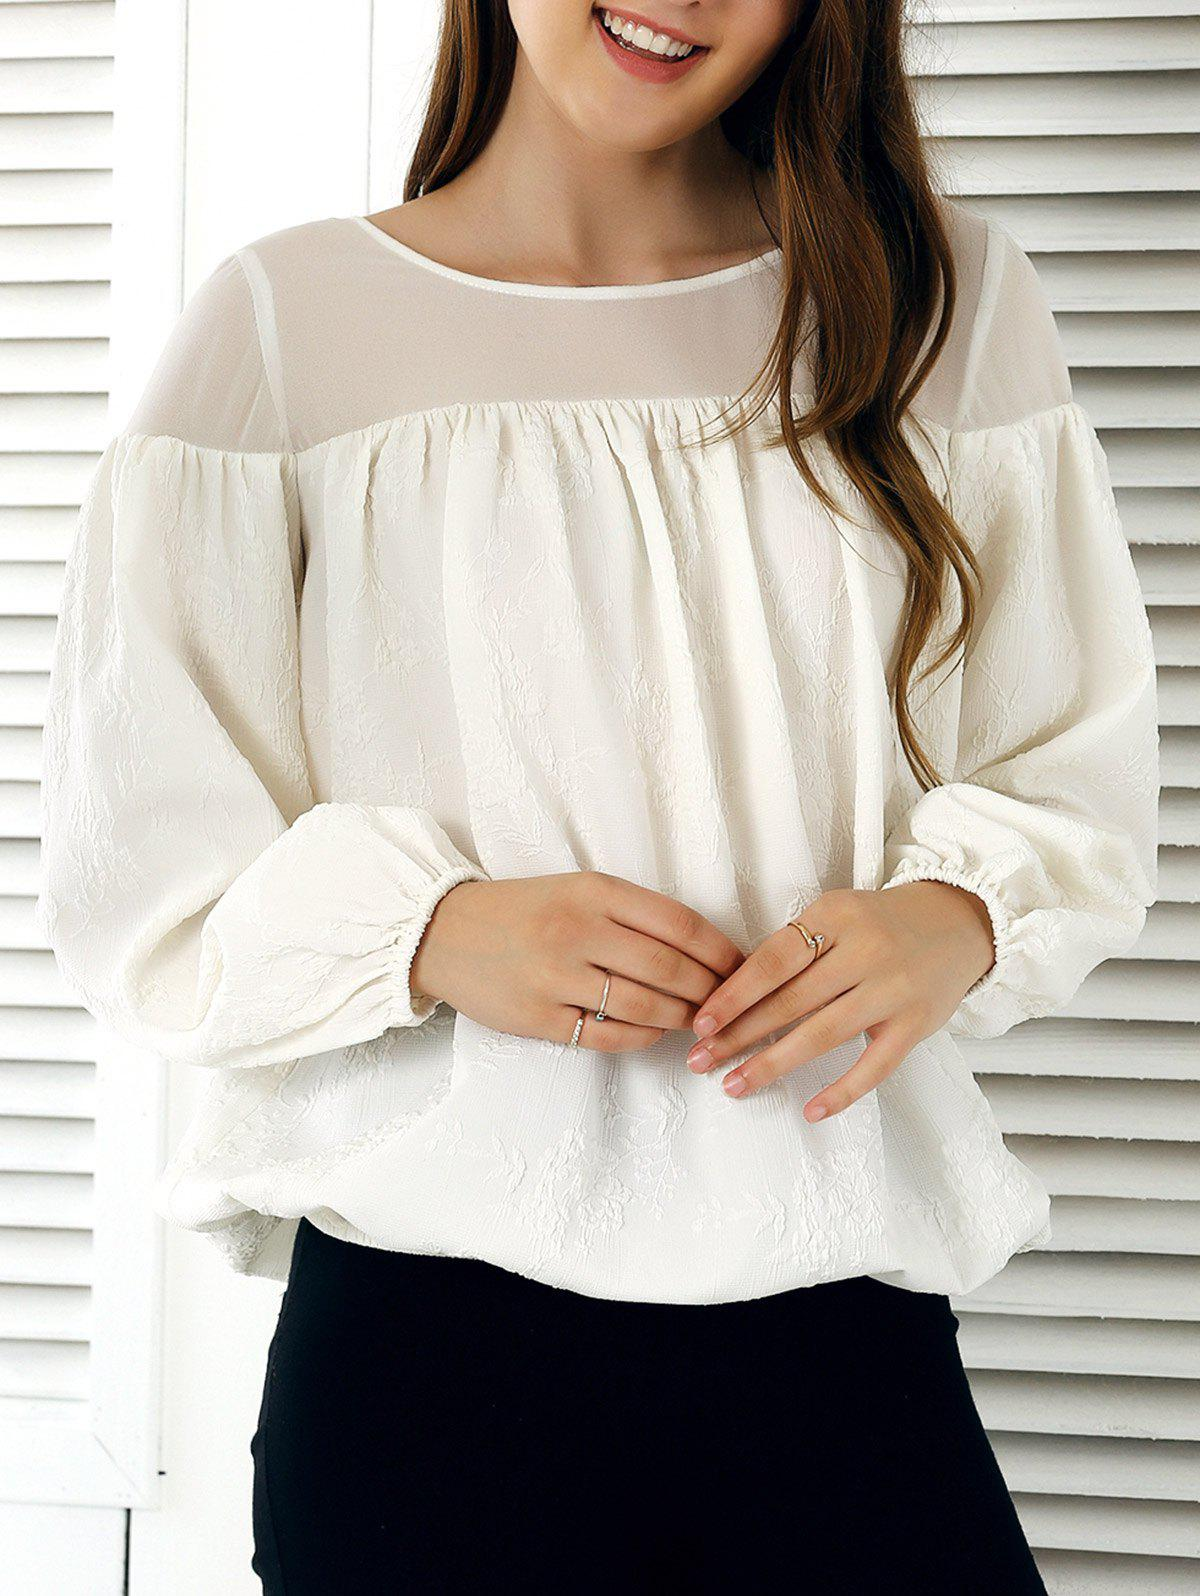 Lantern Sleeve Tie Back Blouse - OFF WHITE XL